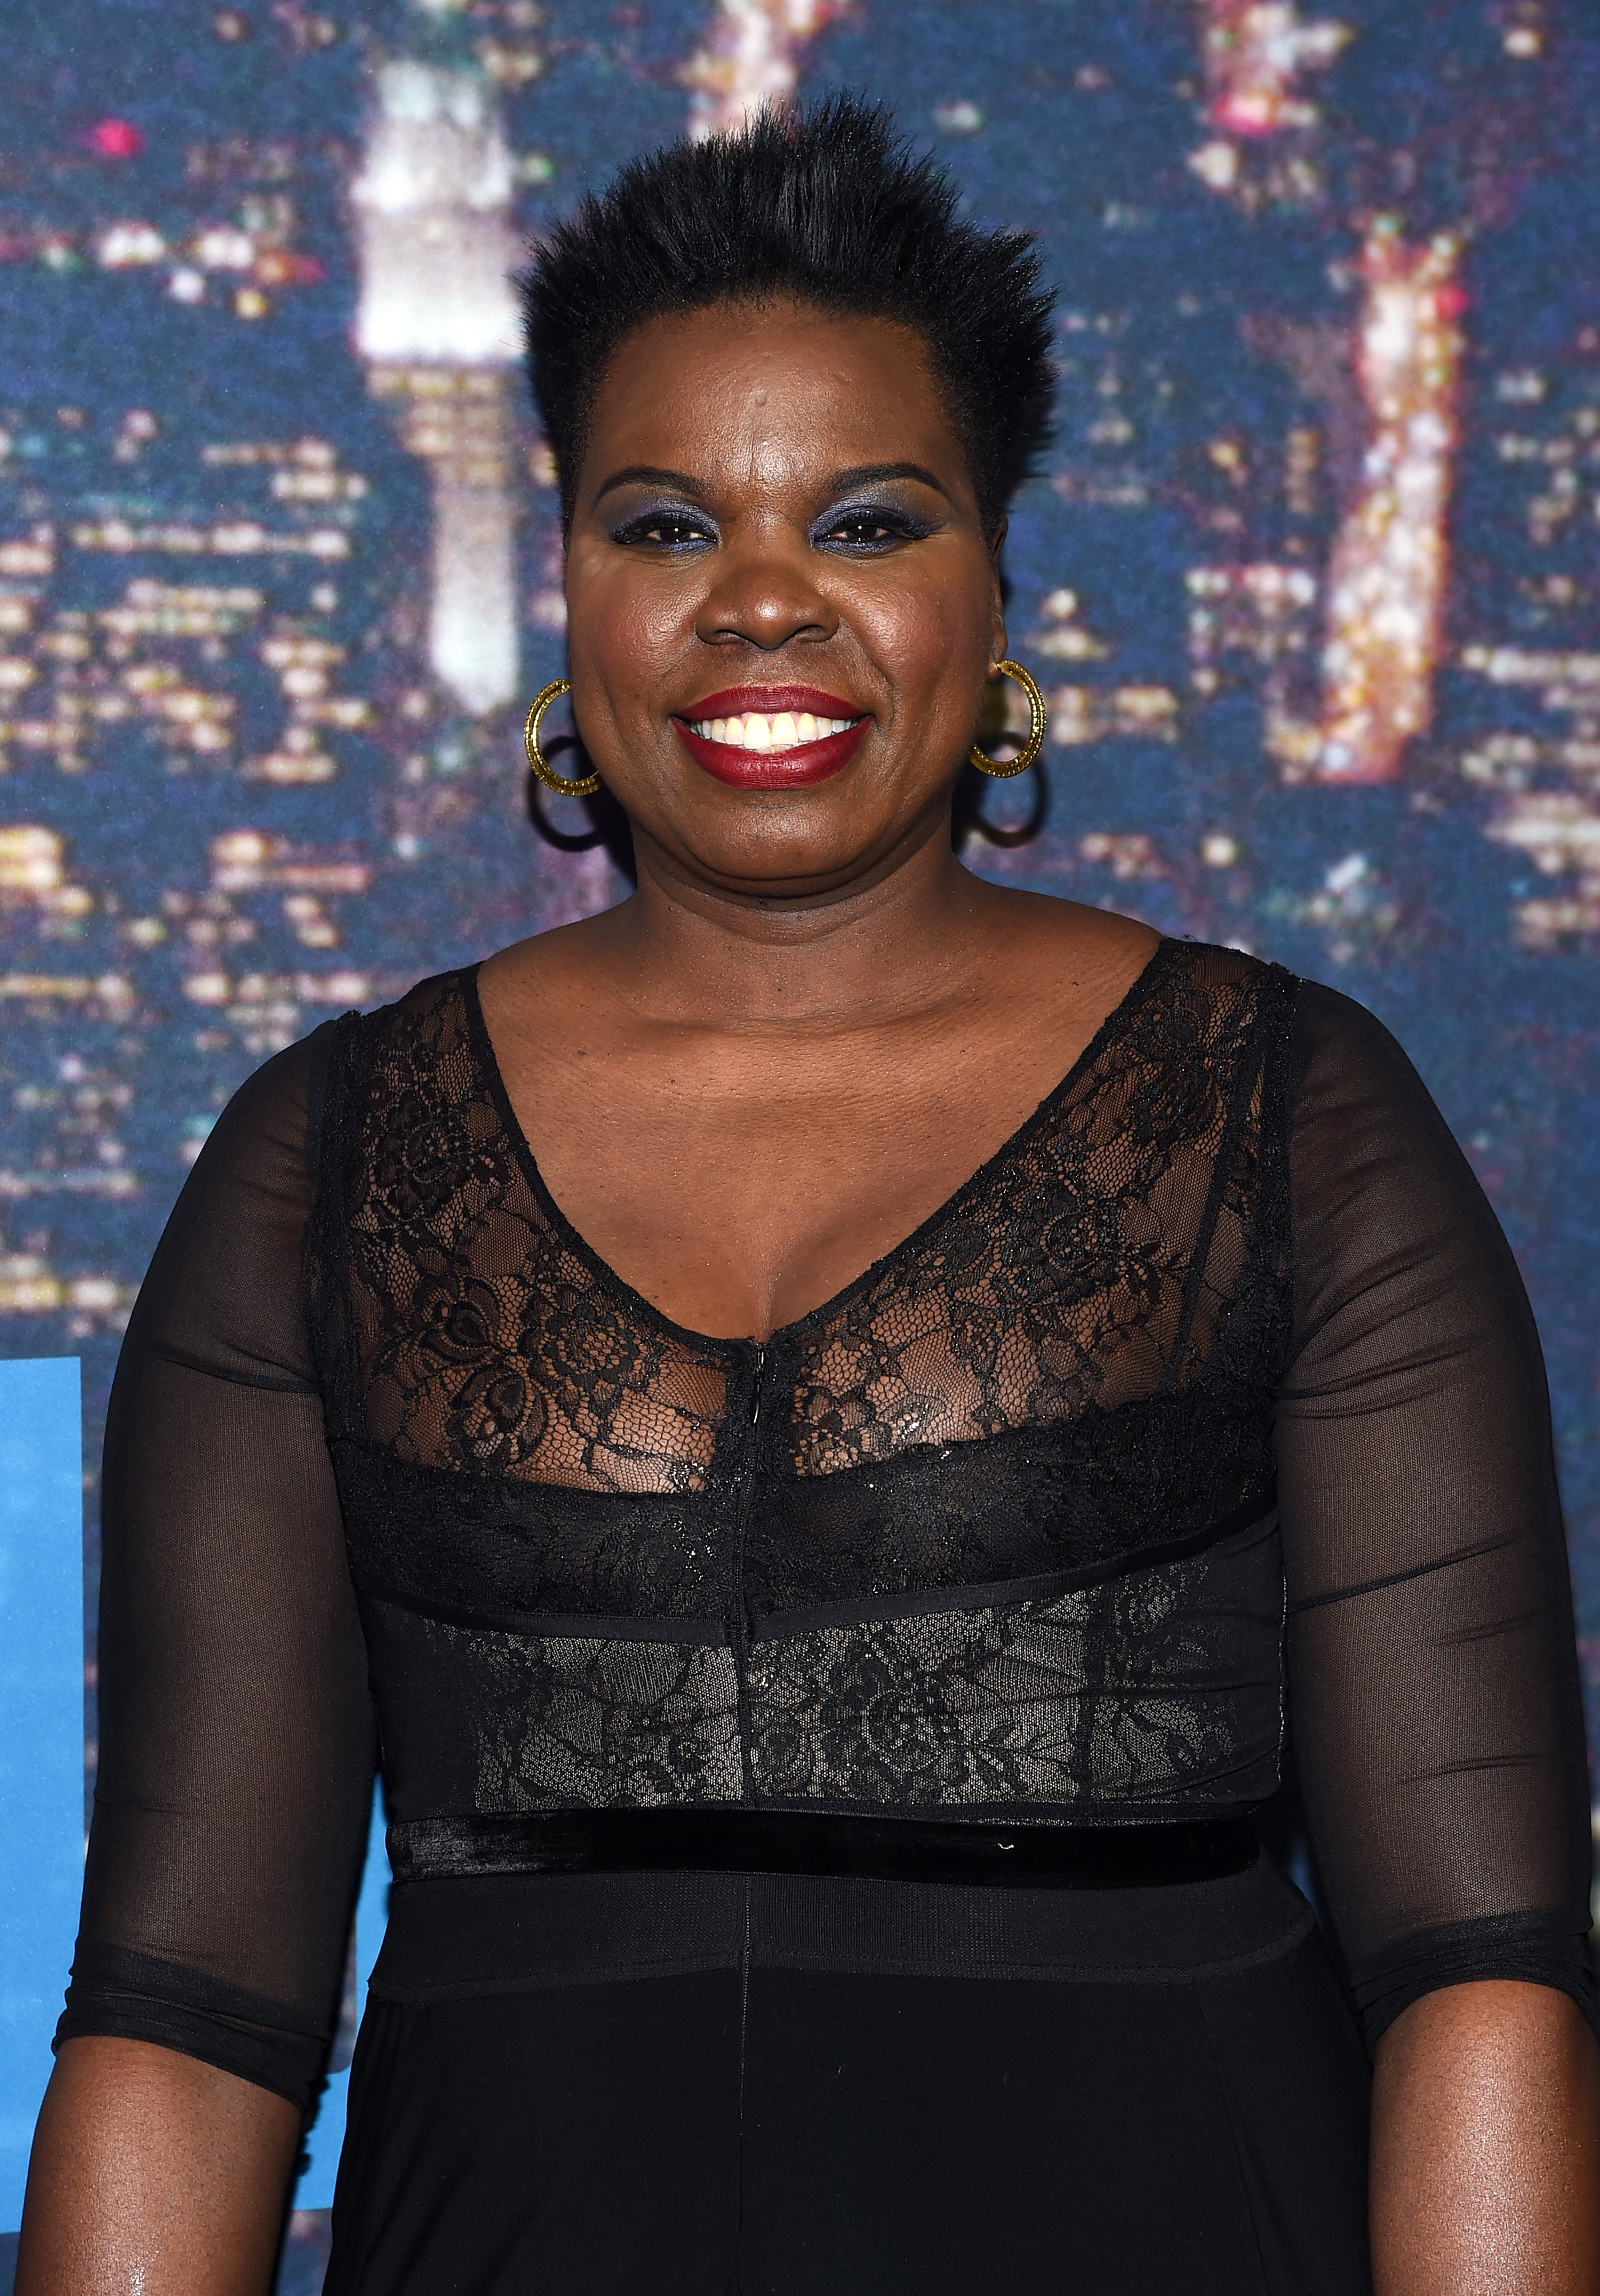 Comedian Leslie Jones took to twitter over frustration about the lack of designer options for non-sample sized actresses.